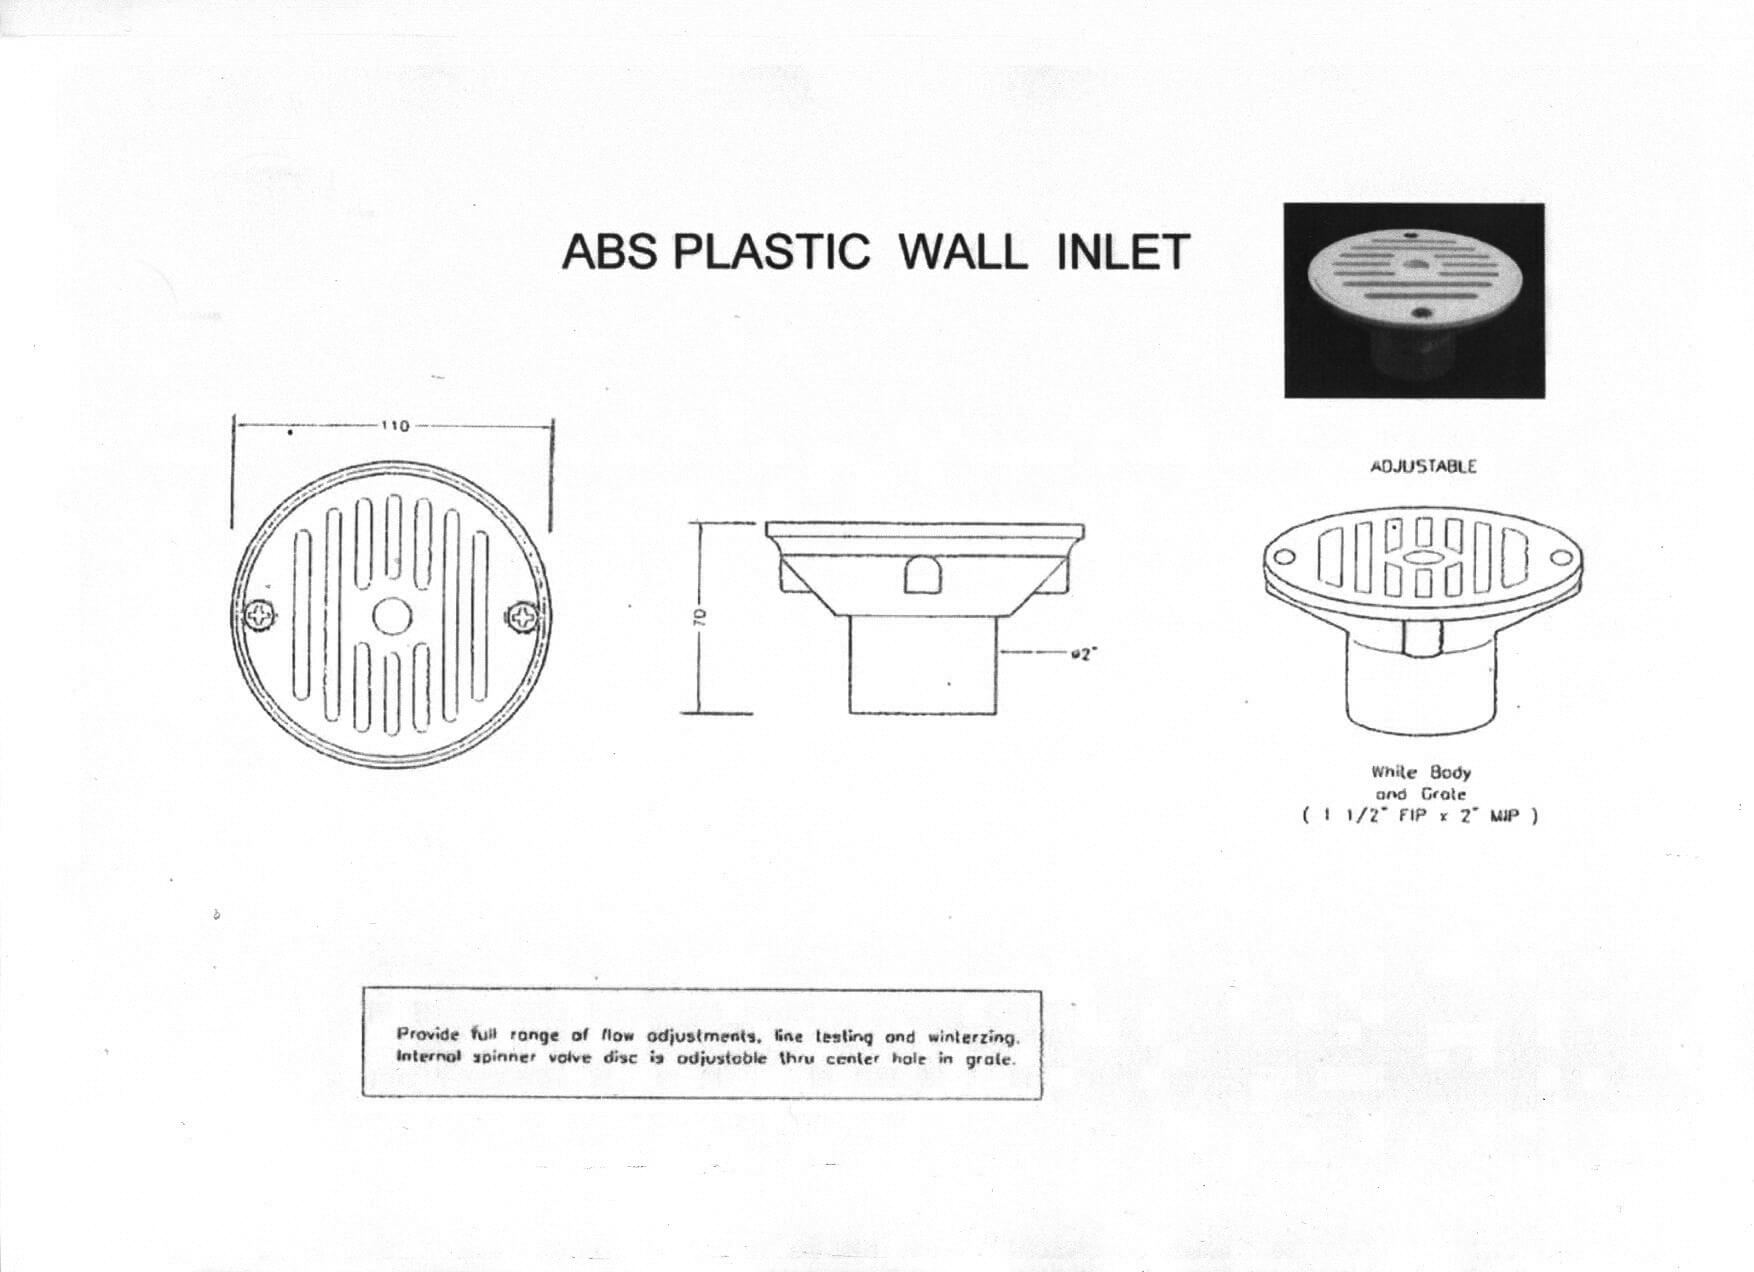 Wall-Inlet-ABS-Plastic-01